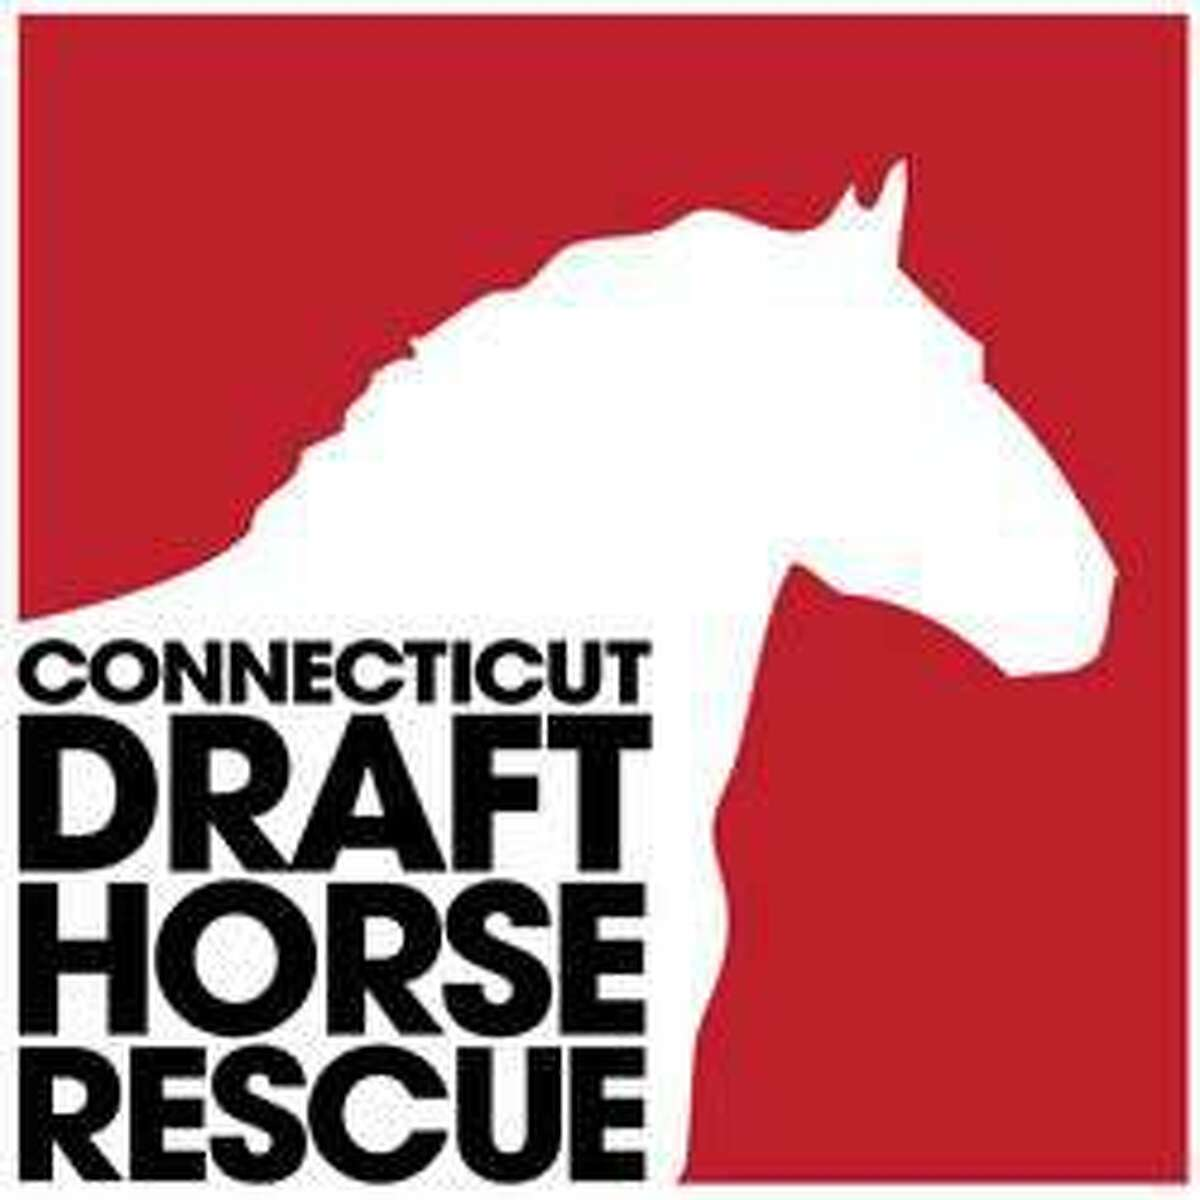 Connecticut Draft Horse Rescue